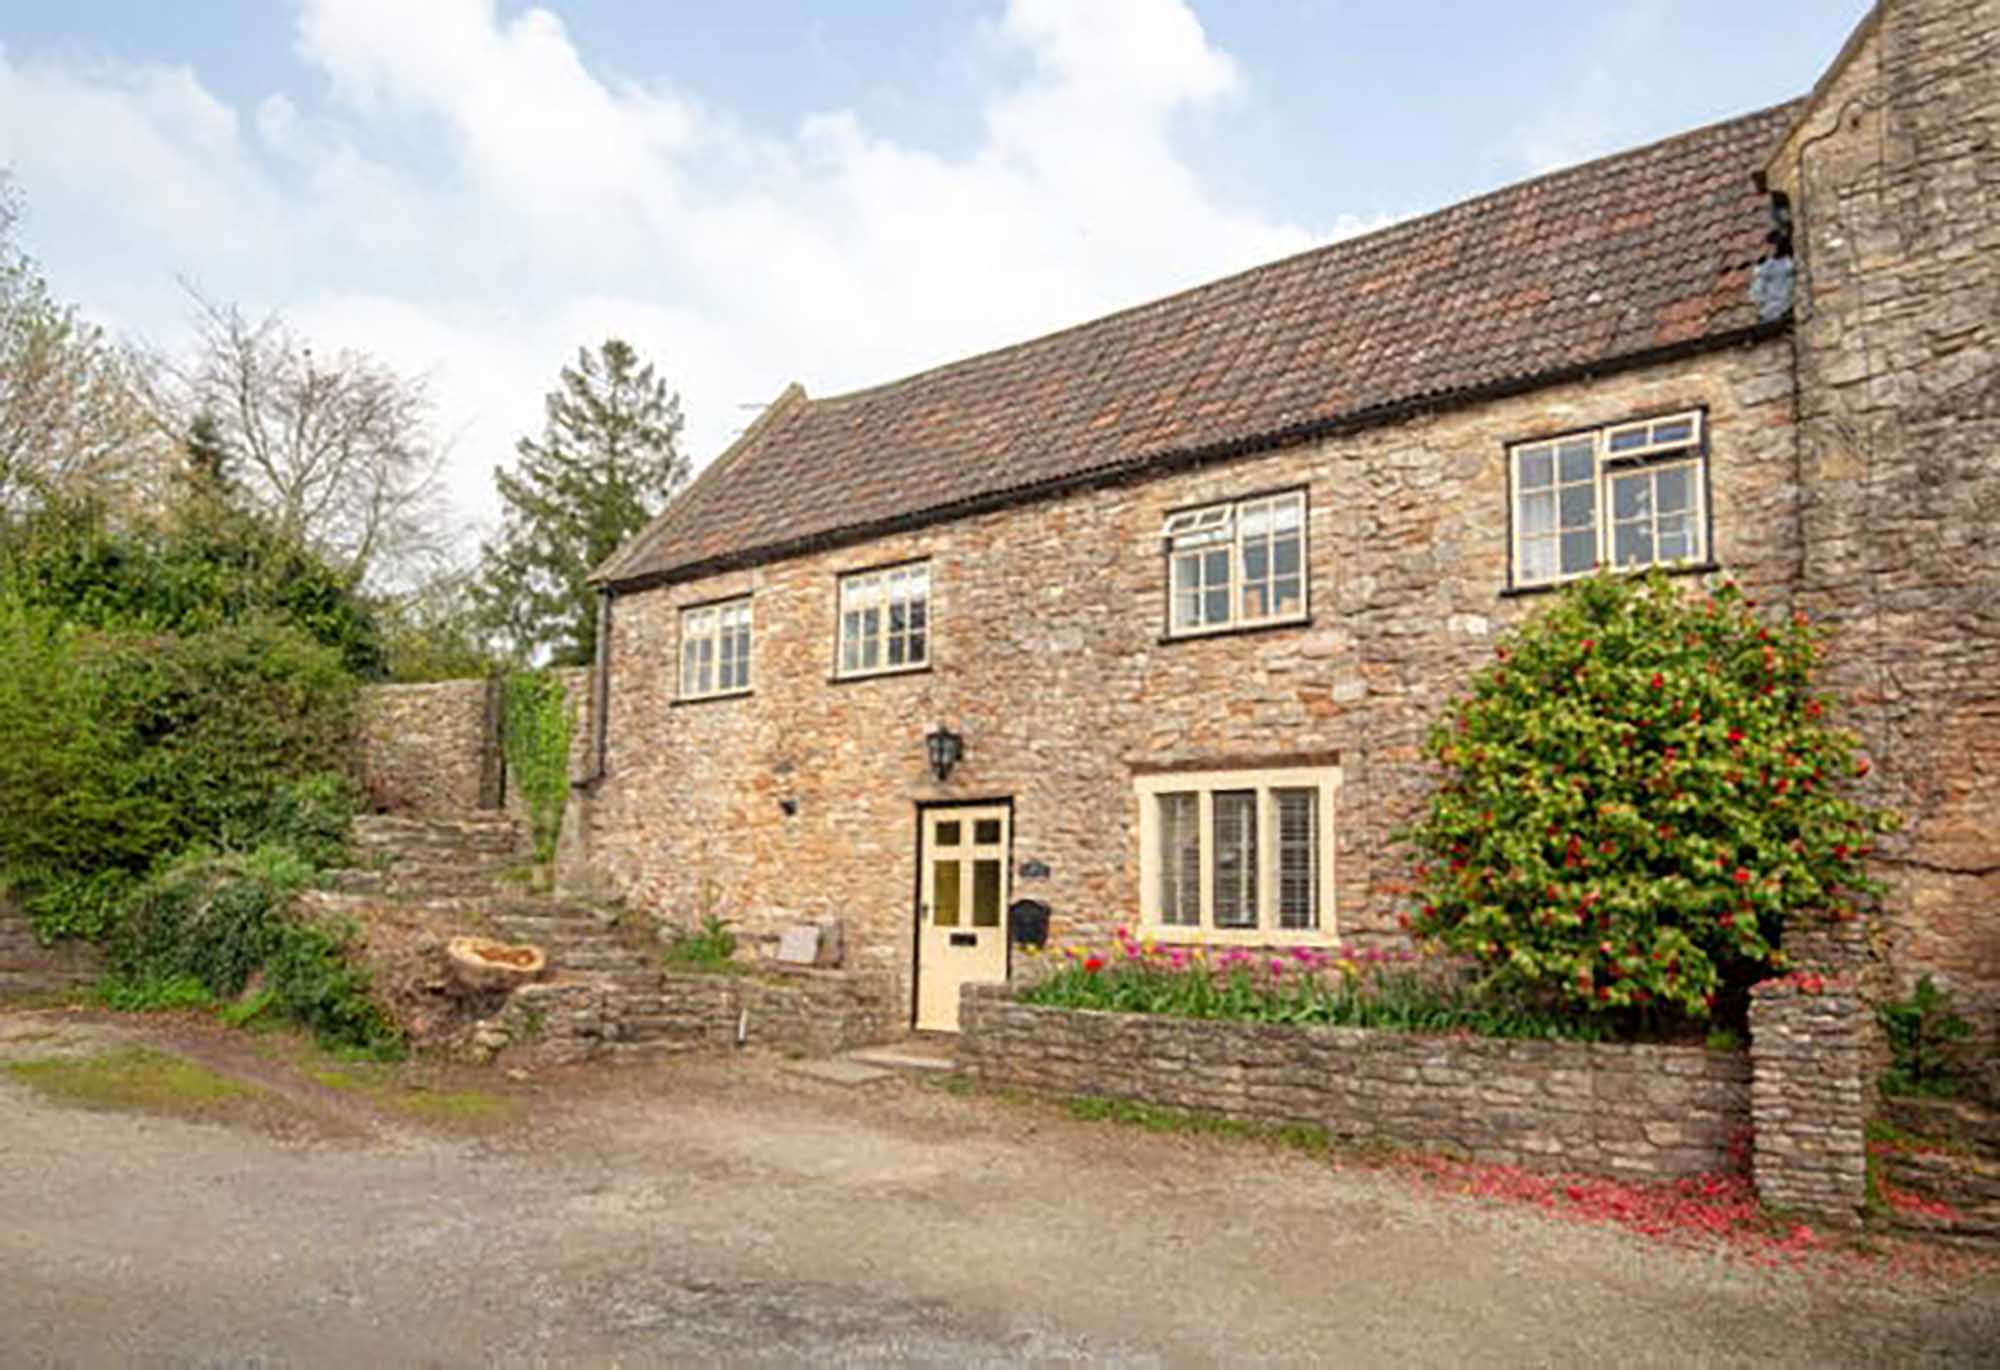 Charming character period cottage near Wells